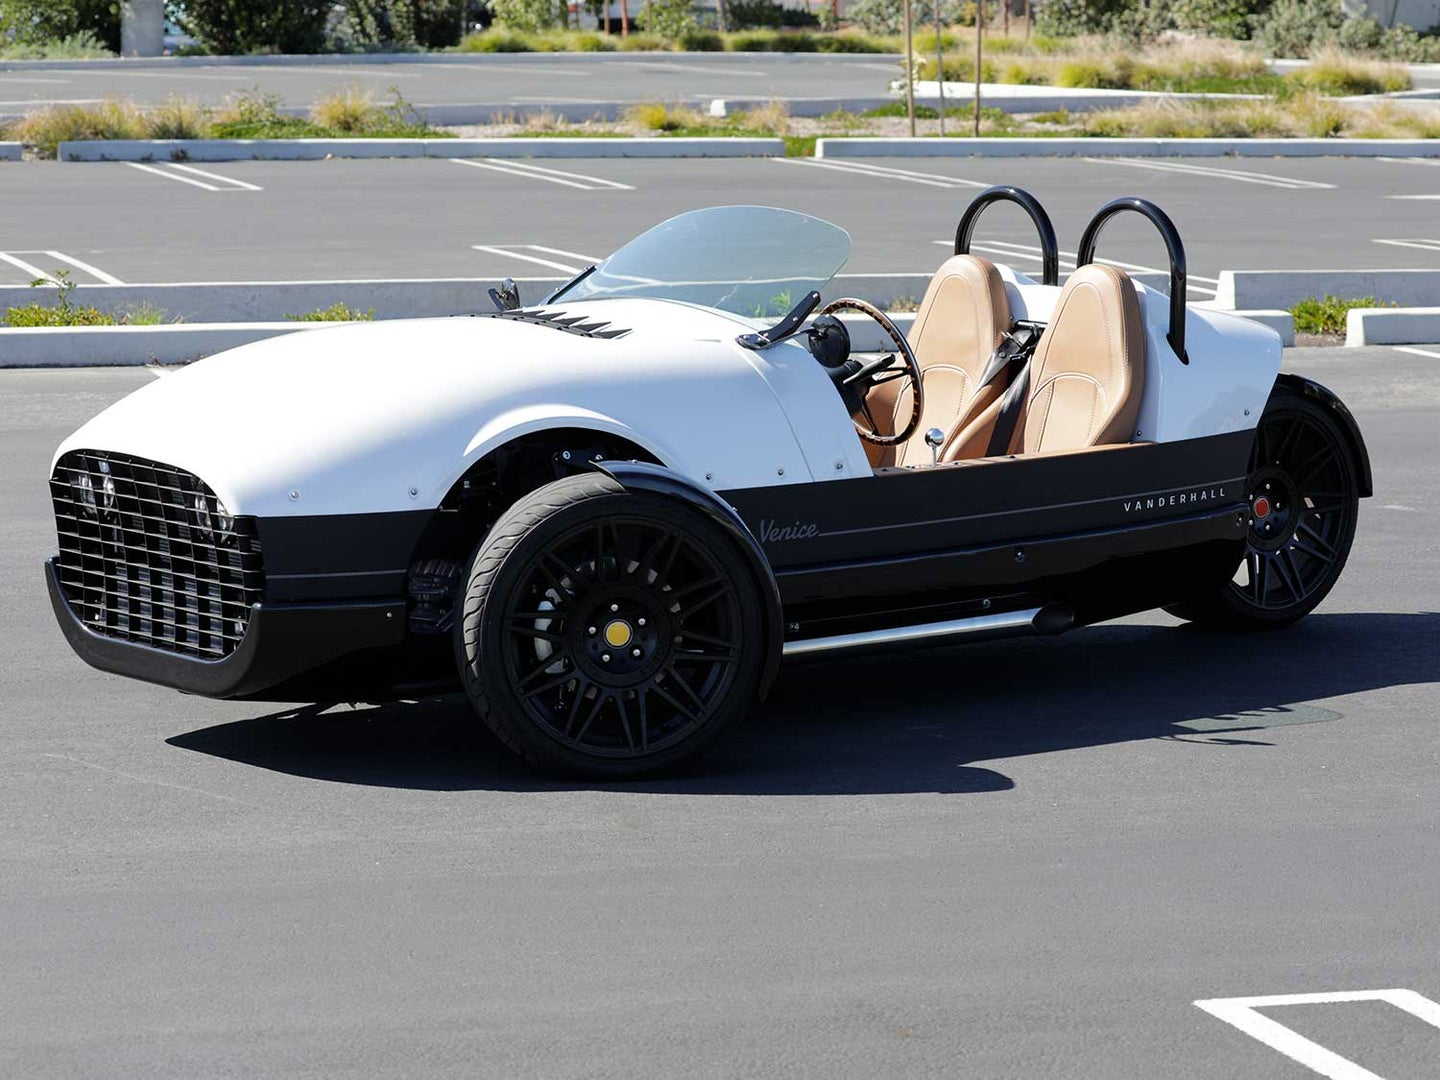 A Vanderhall what? We go for a ride, er, drive, in Vanderhall Motor Works' premium Venice GT reverse trike.